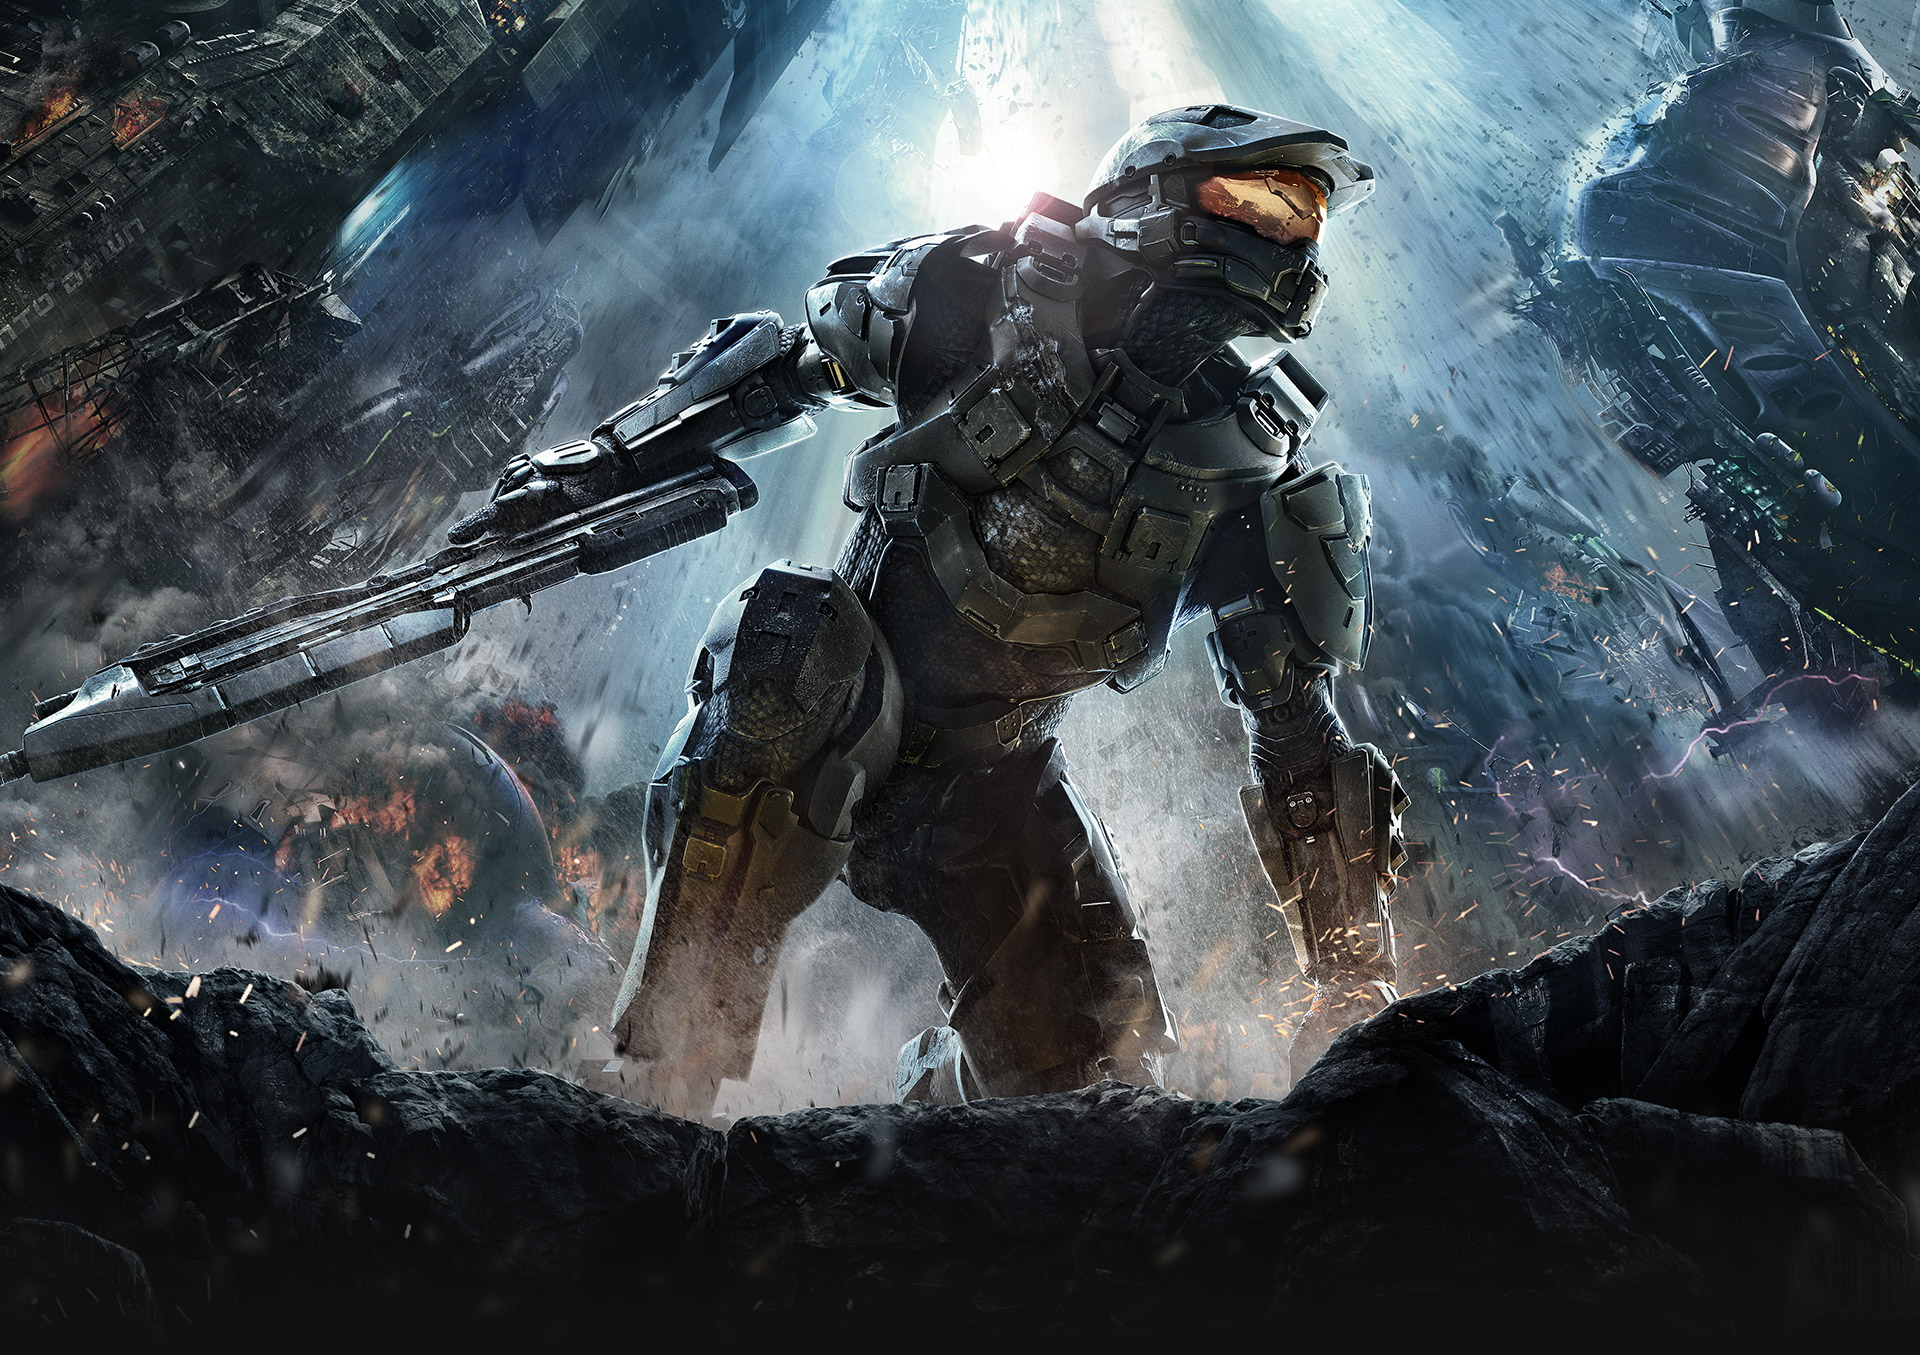 Image of Master Chief from halo